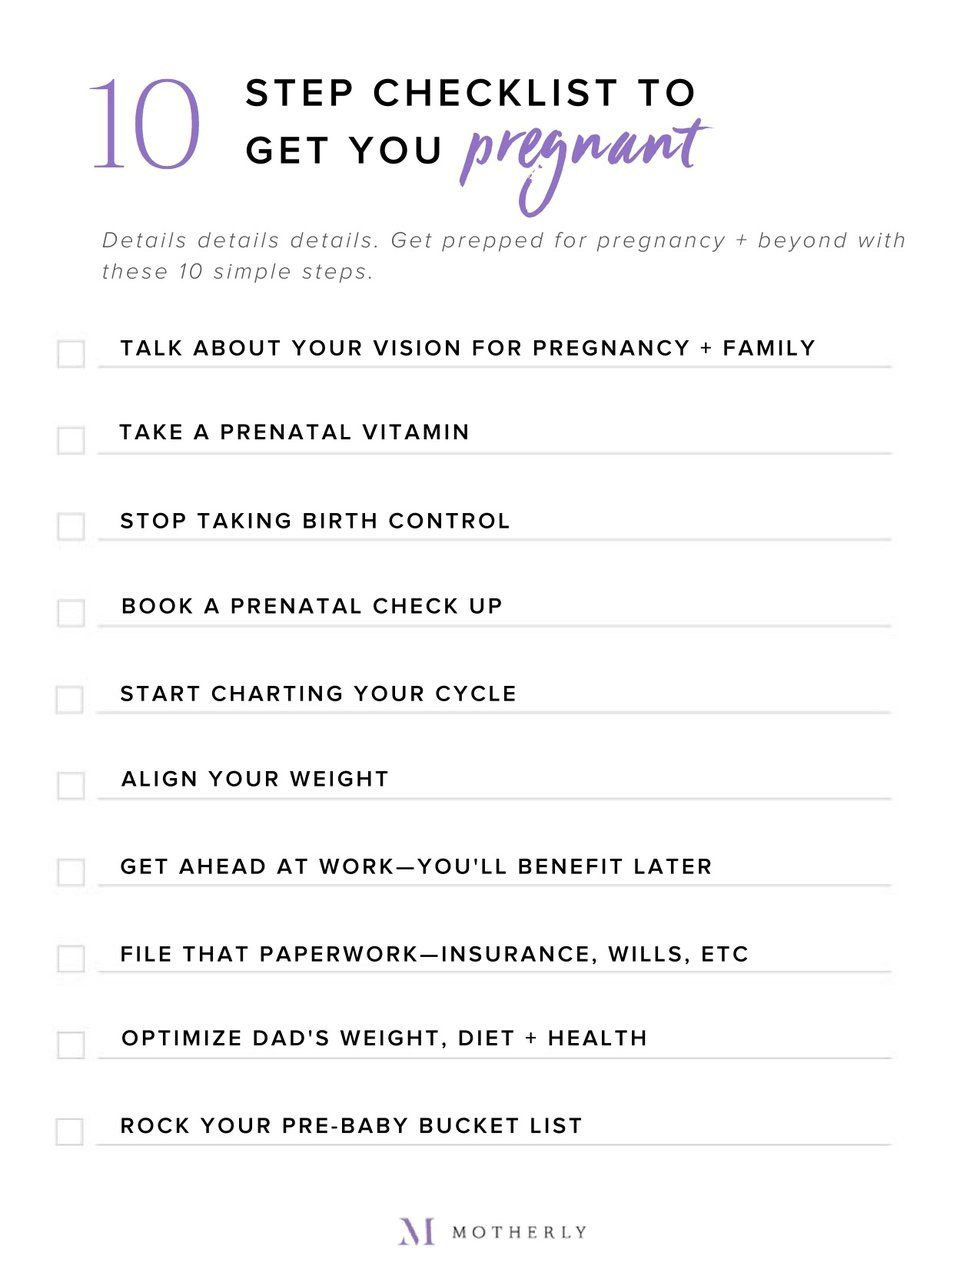 Dating a black man tips to get pregnant